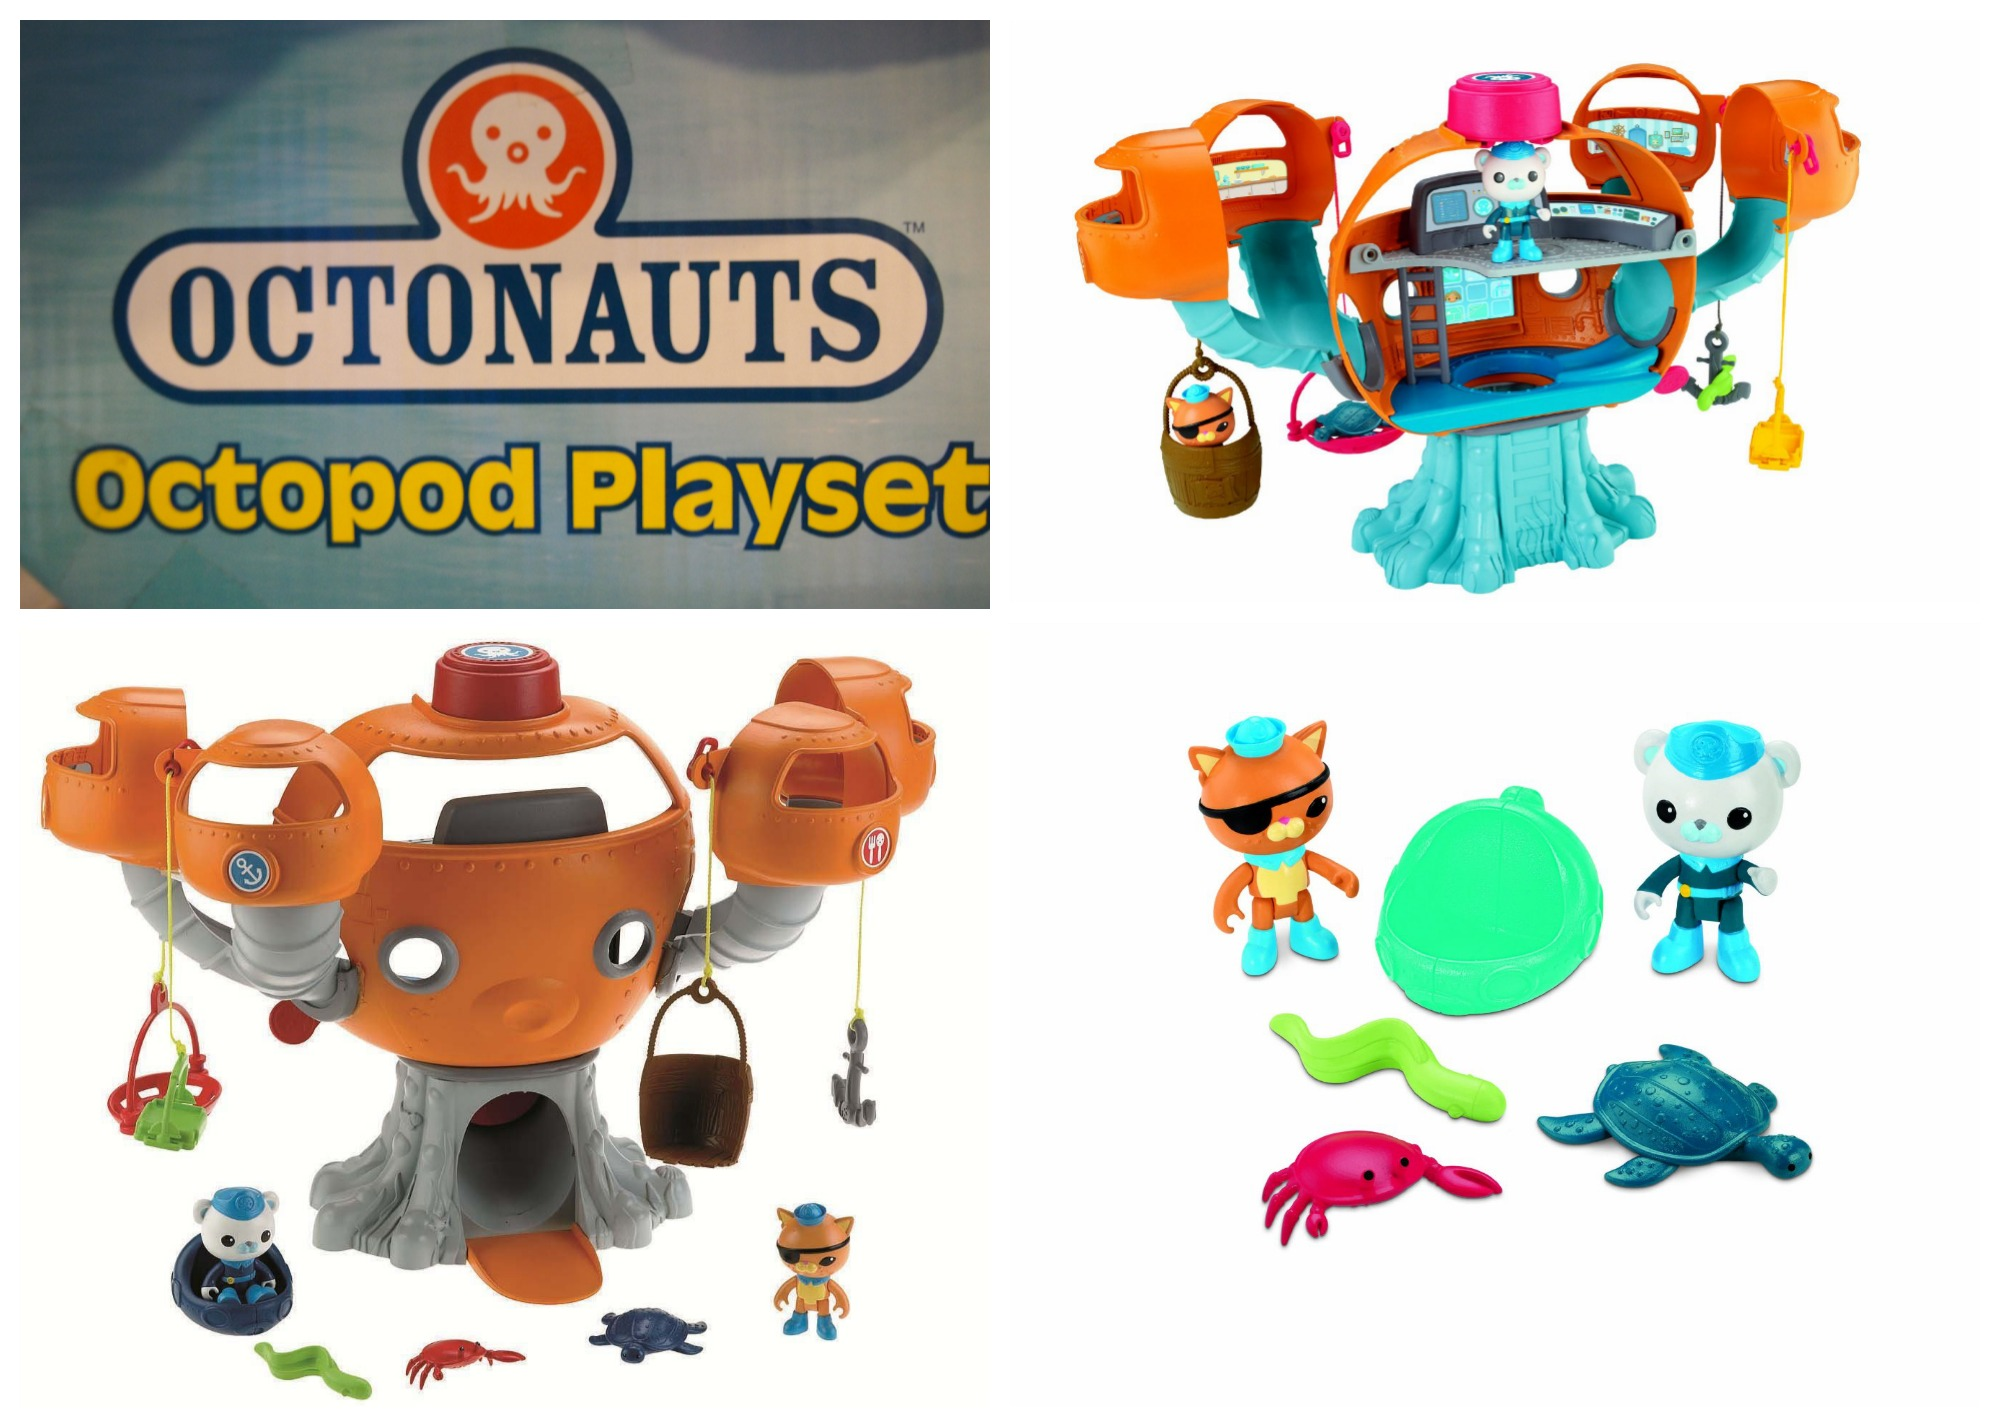 Best Octonauts Toys Kids : Learning through play with octonauts toys from fisher